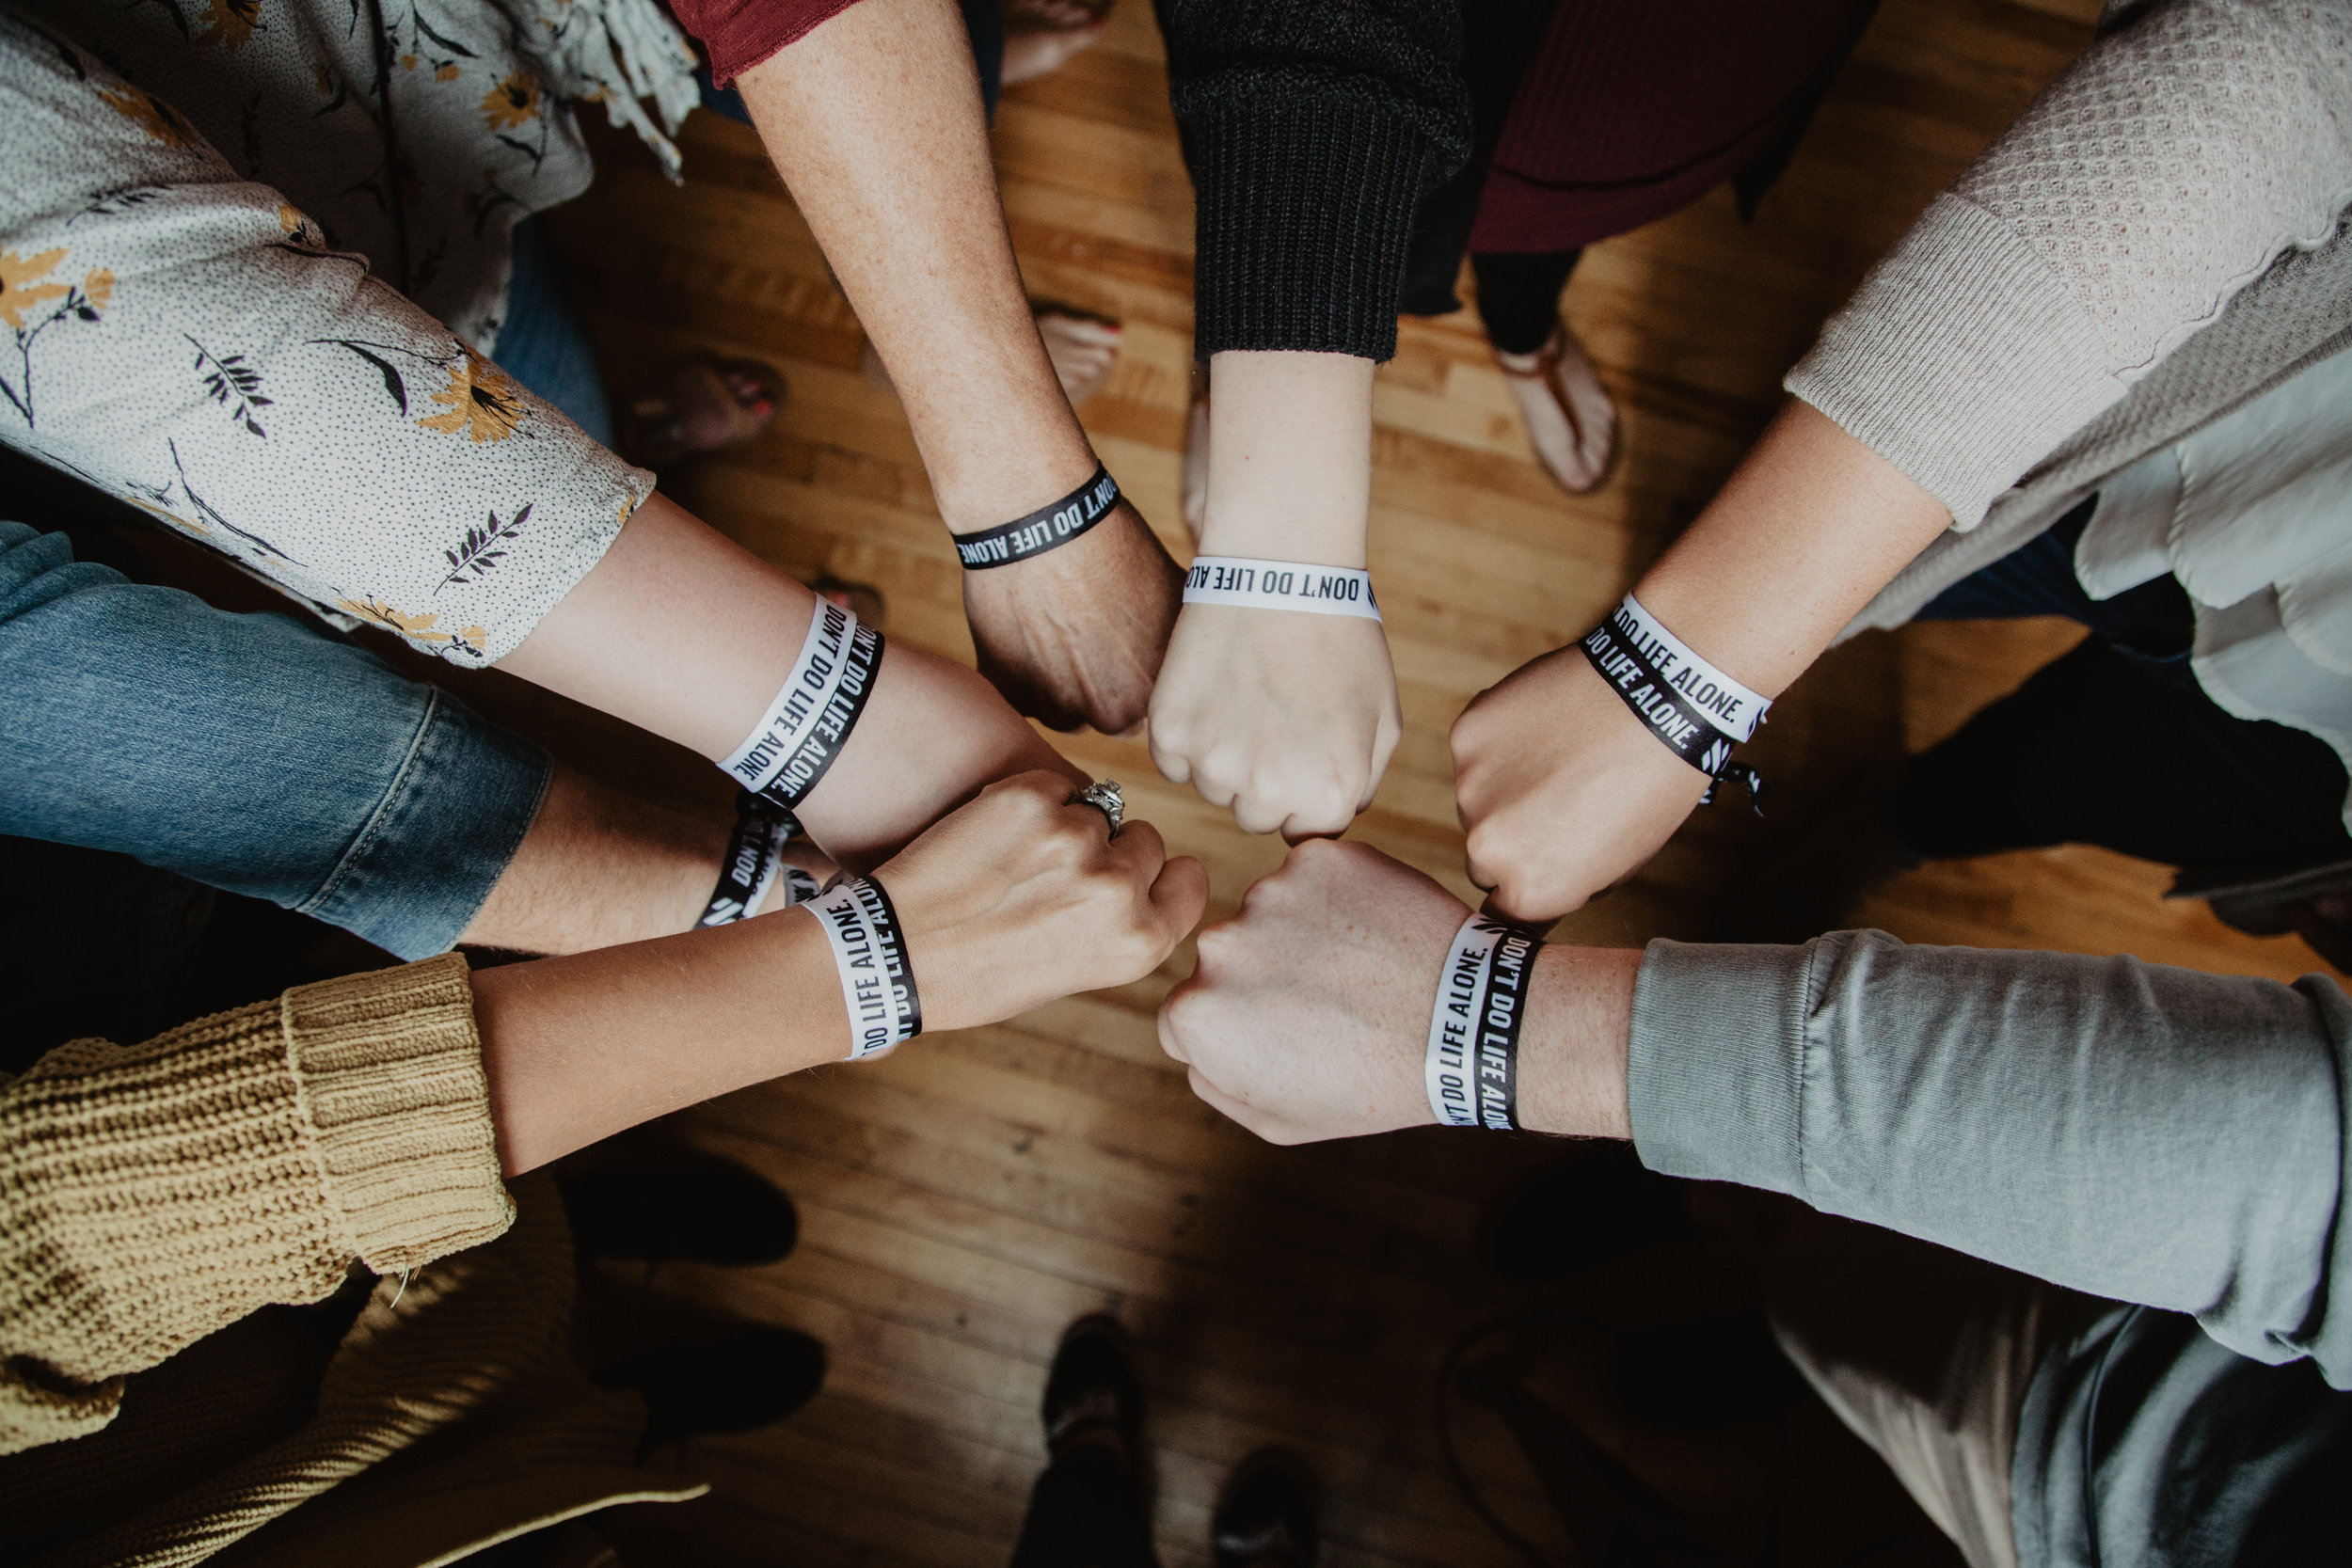 """Neo Church members sporting the """"Don't do life alone"""" bracelets."""